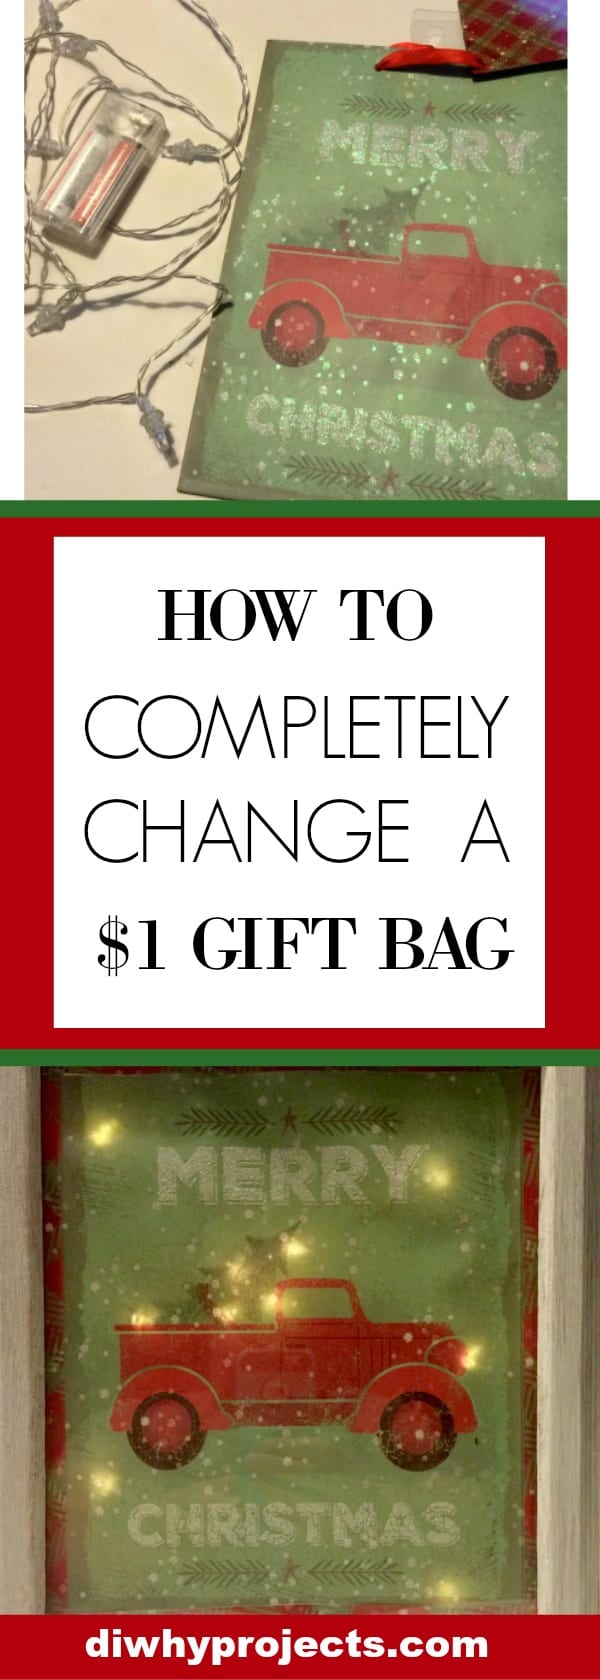 Upcycle Christmas Gift Bags To Light Up Signs - Daily Dose of DIY